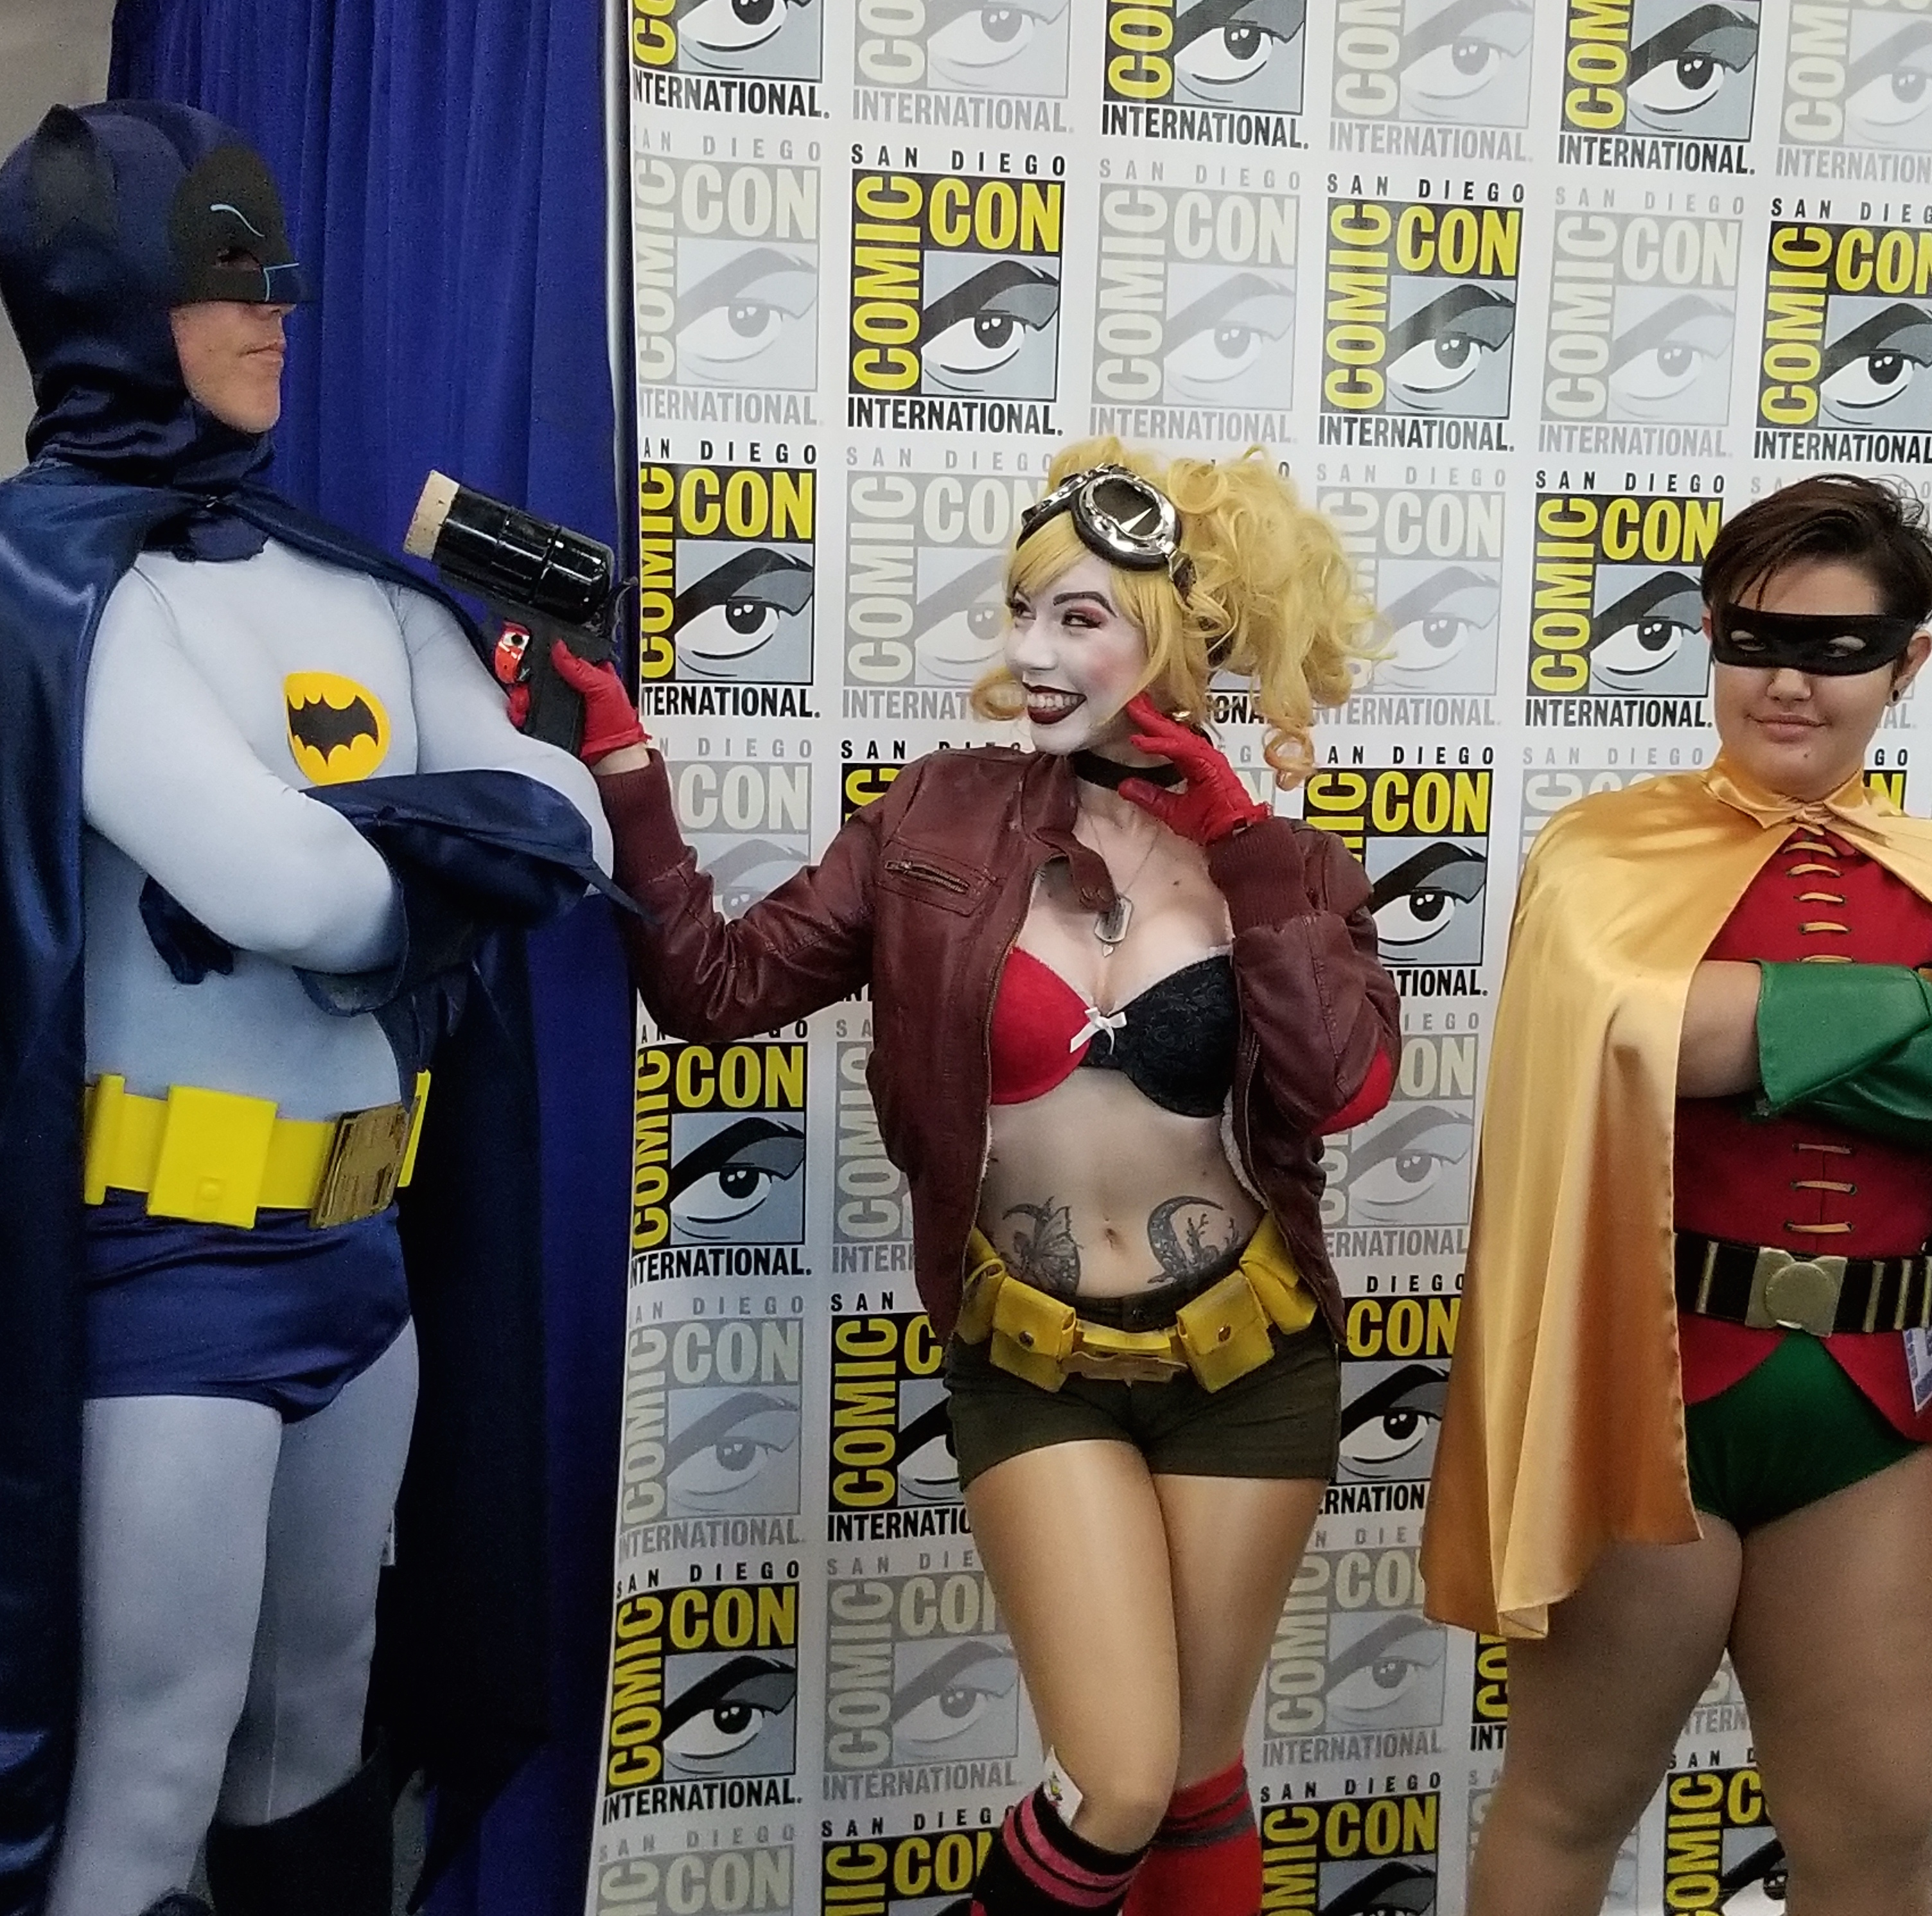 SDCC 2017: The Final Frontier for SDCC Cosplay